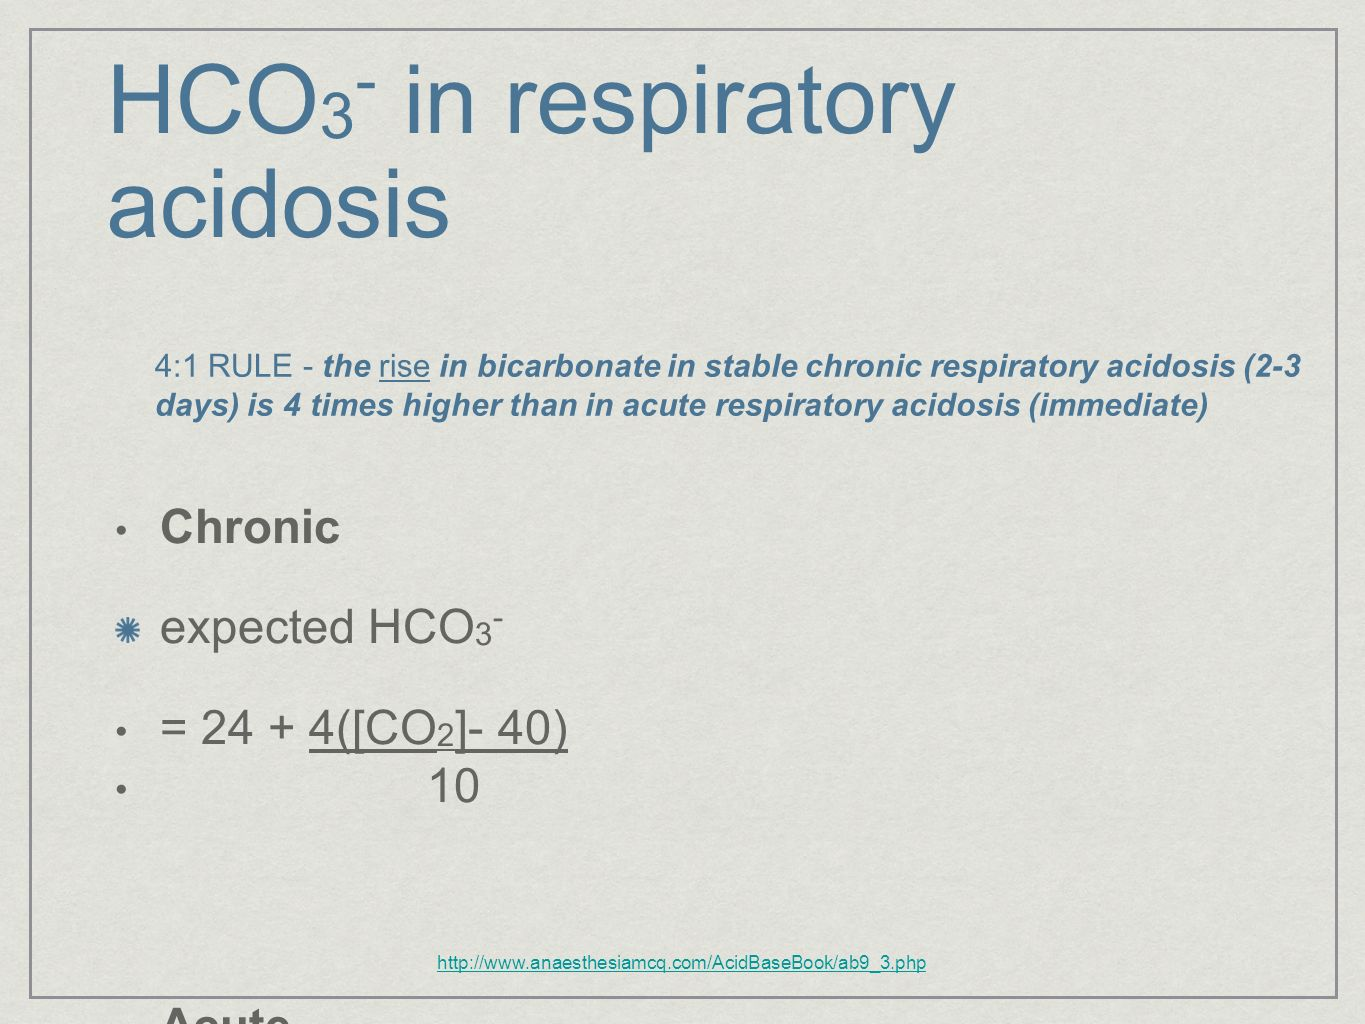 HCO3- in respiratory acidosis